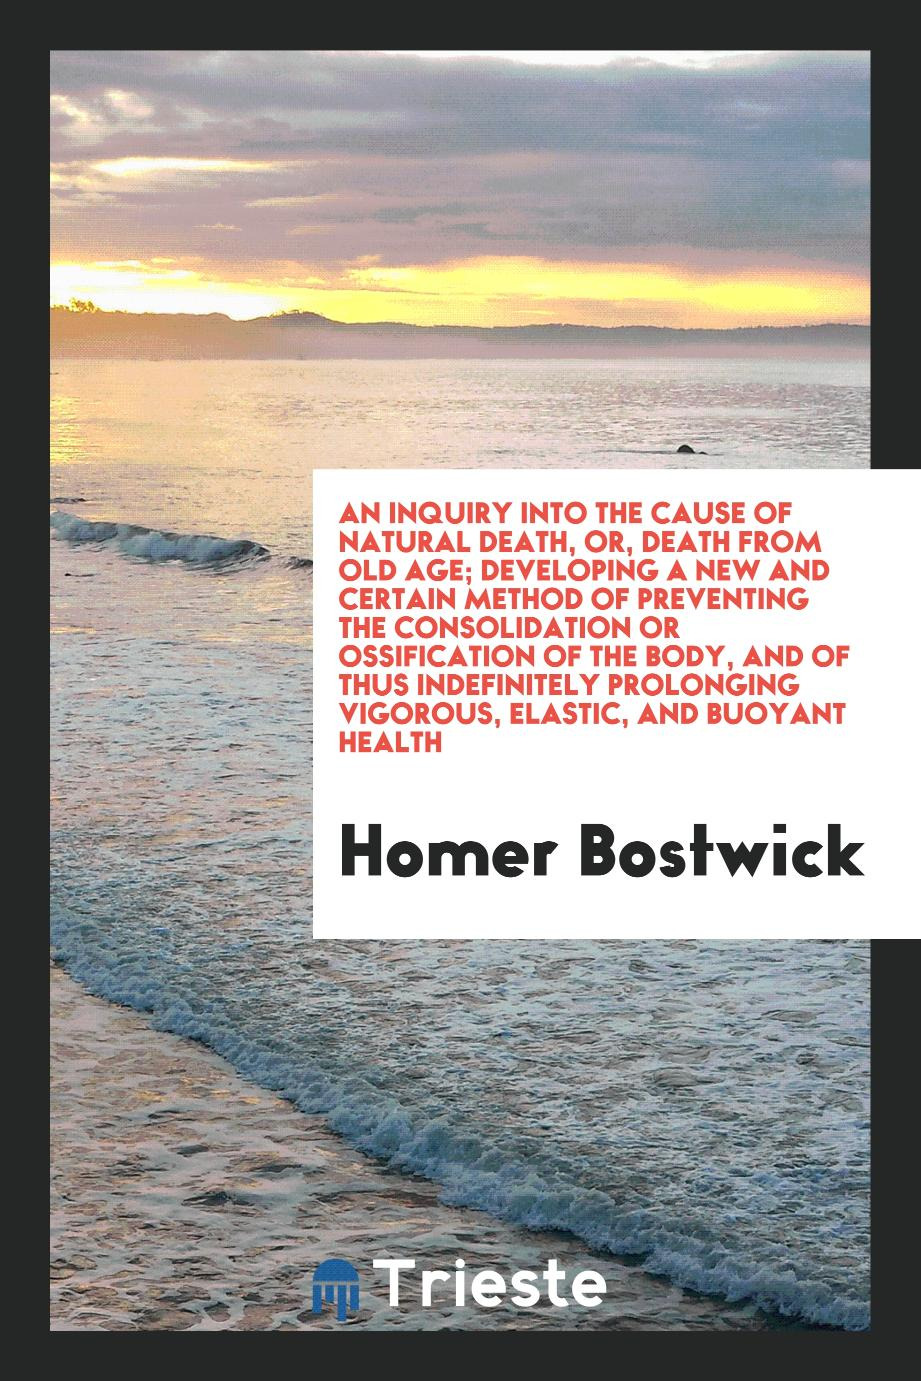 An Inquiry Into the Cause of Natural Death, or, Death from Old Age; Developing a New and Certain Method of Preventing the Consolidation or Ossification of the Body, and of thus Indefinitely Prolonging Vigorous, Elastic, and Buoyant Health